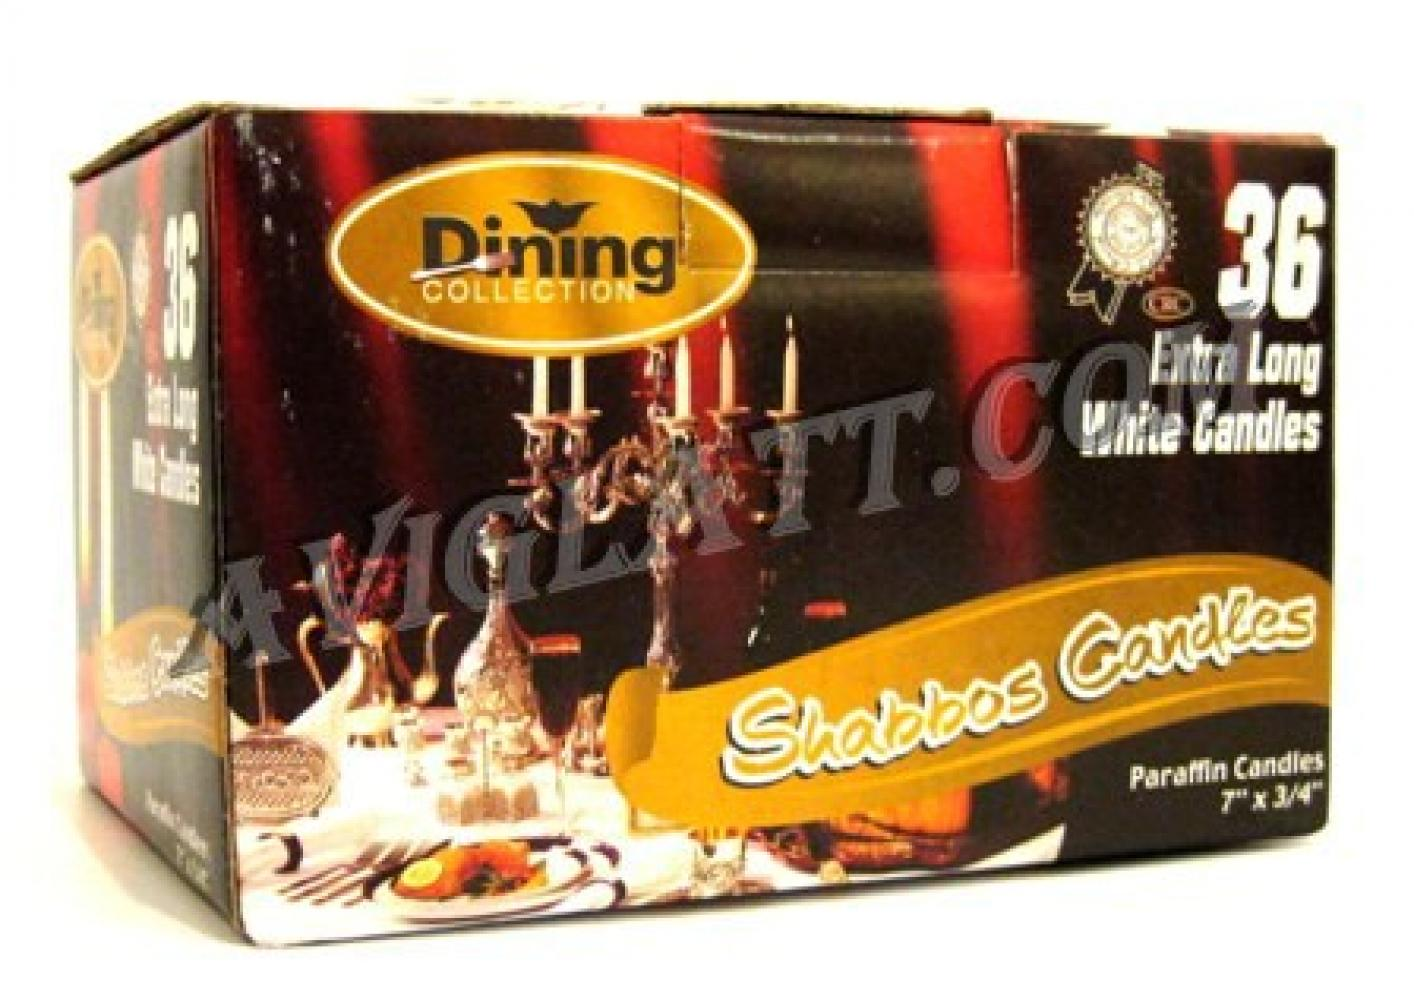 Dining Collection 36 Extra Long White Shabbos Candles